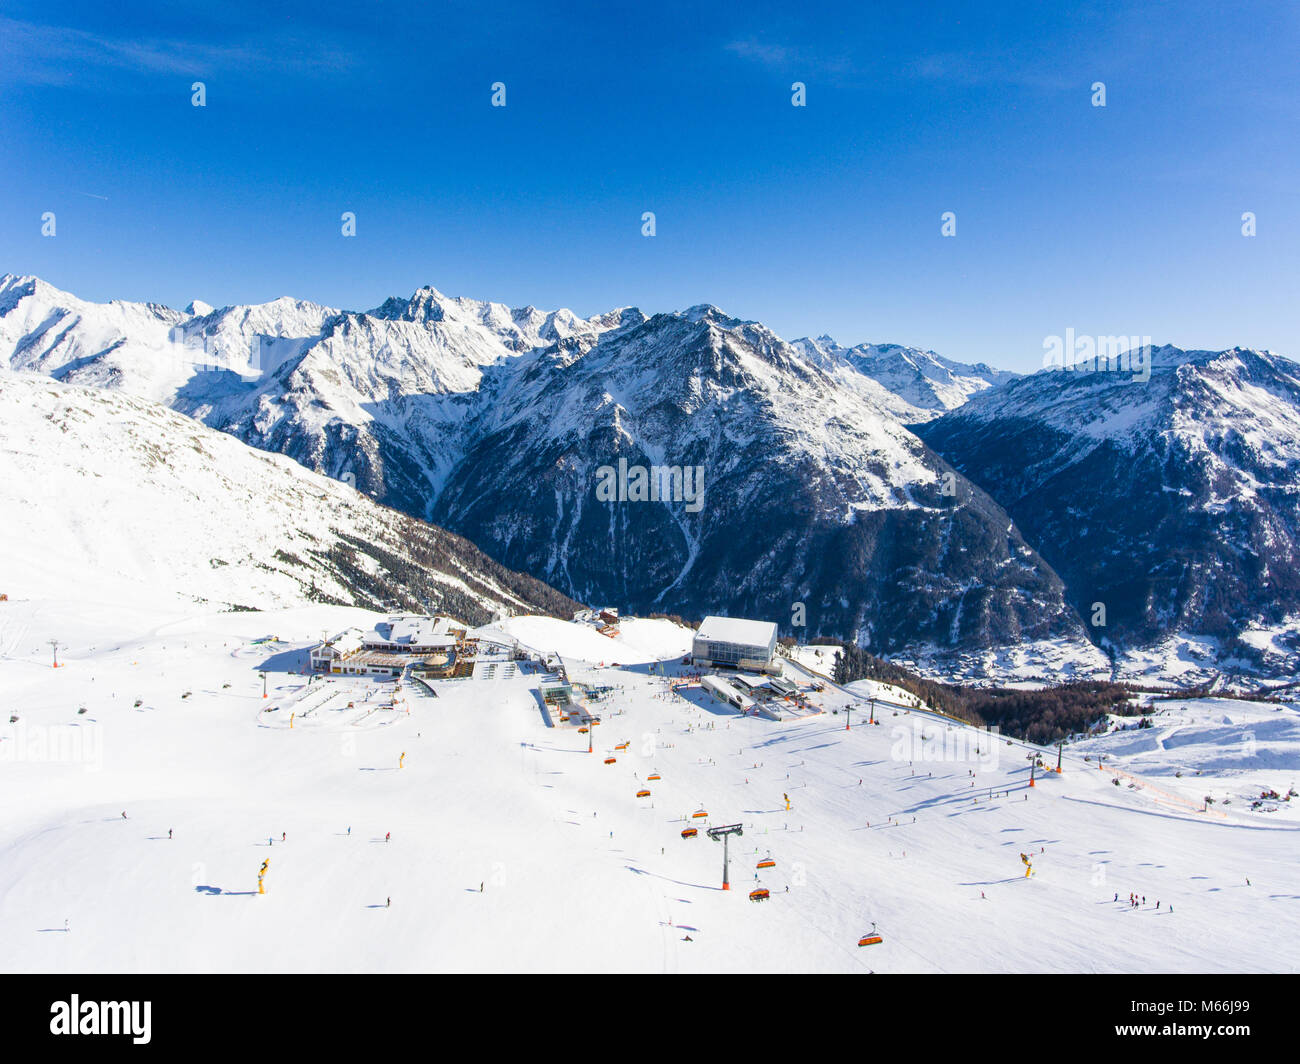 Aerial view of ski resort in the Alps with ski lift and people skiing on the slope - Stock Image